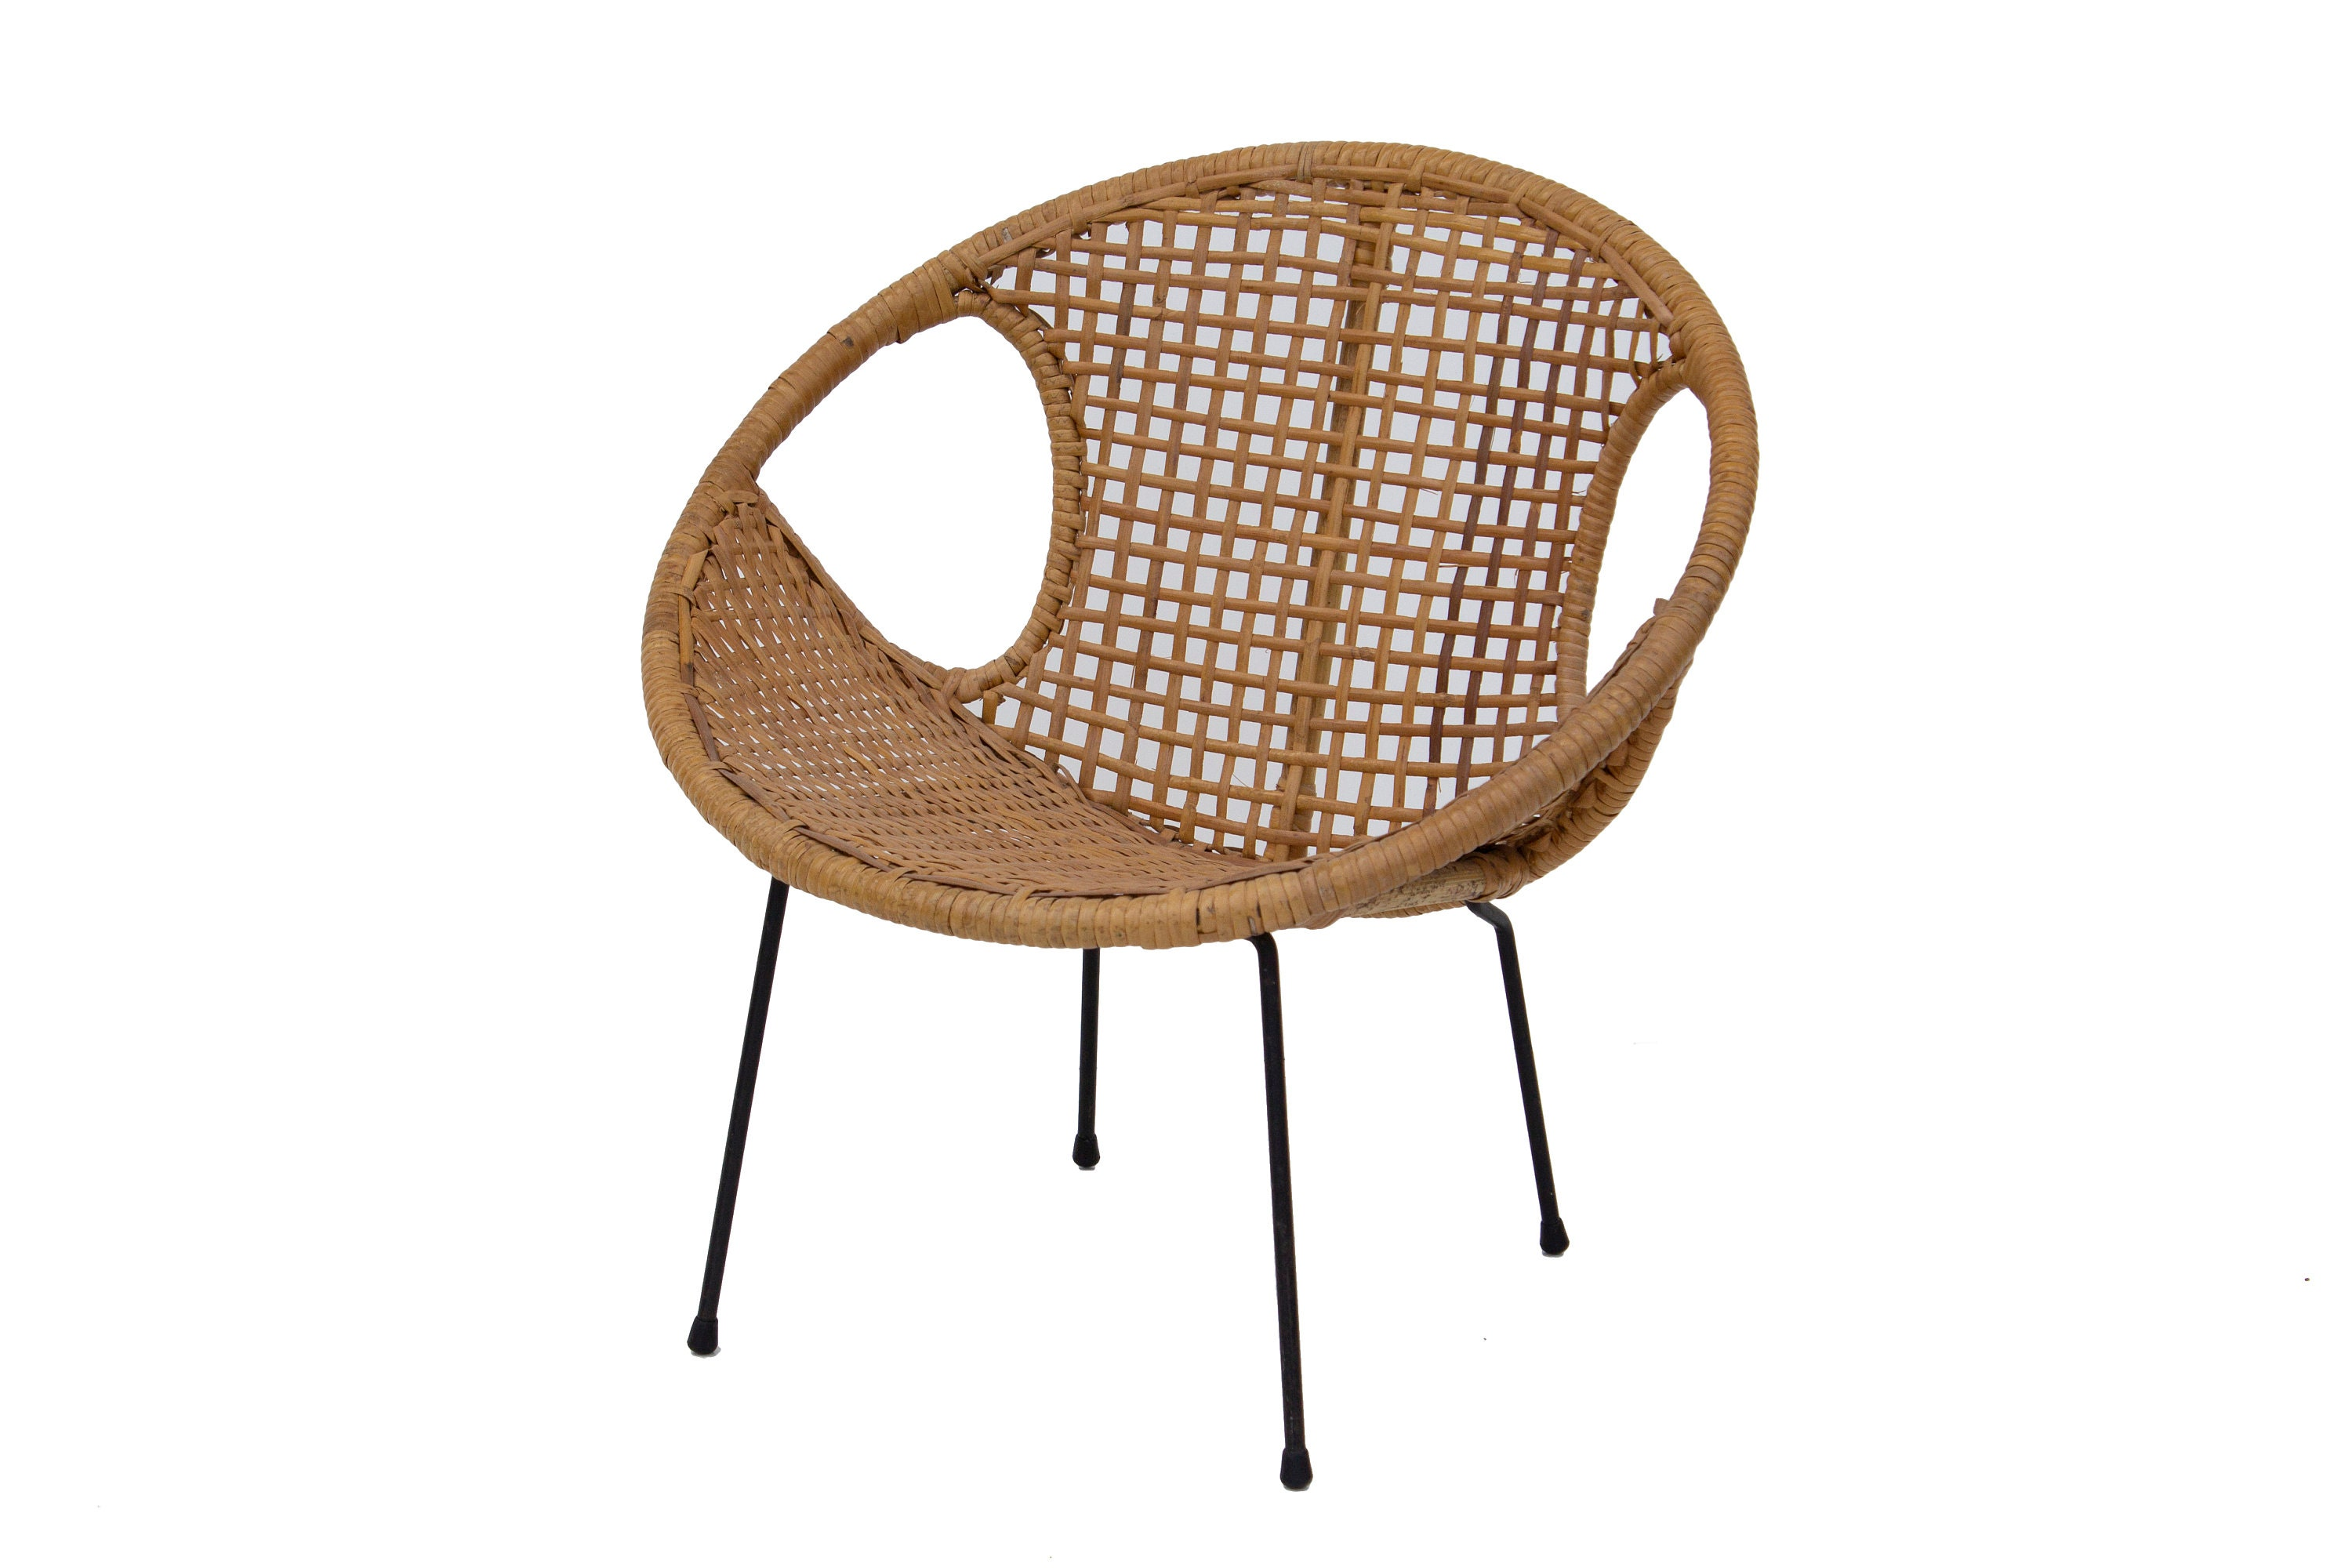 Delicieux Rattan Childu0027s Chair With Iron Legs Cane Rattan Caning Seat Umanoff McCobb  Style Kids Furniture